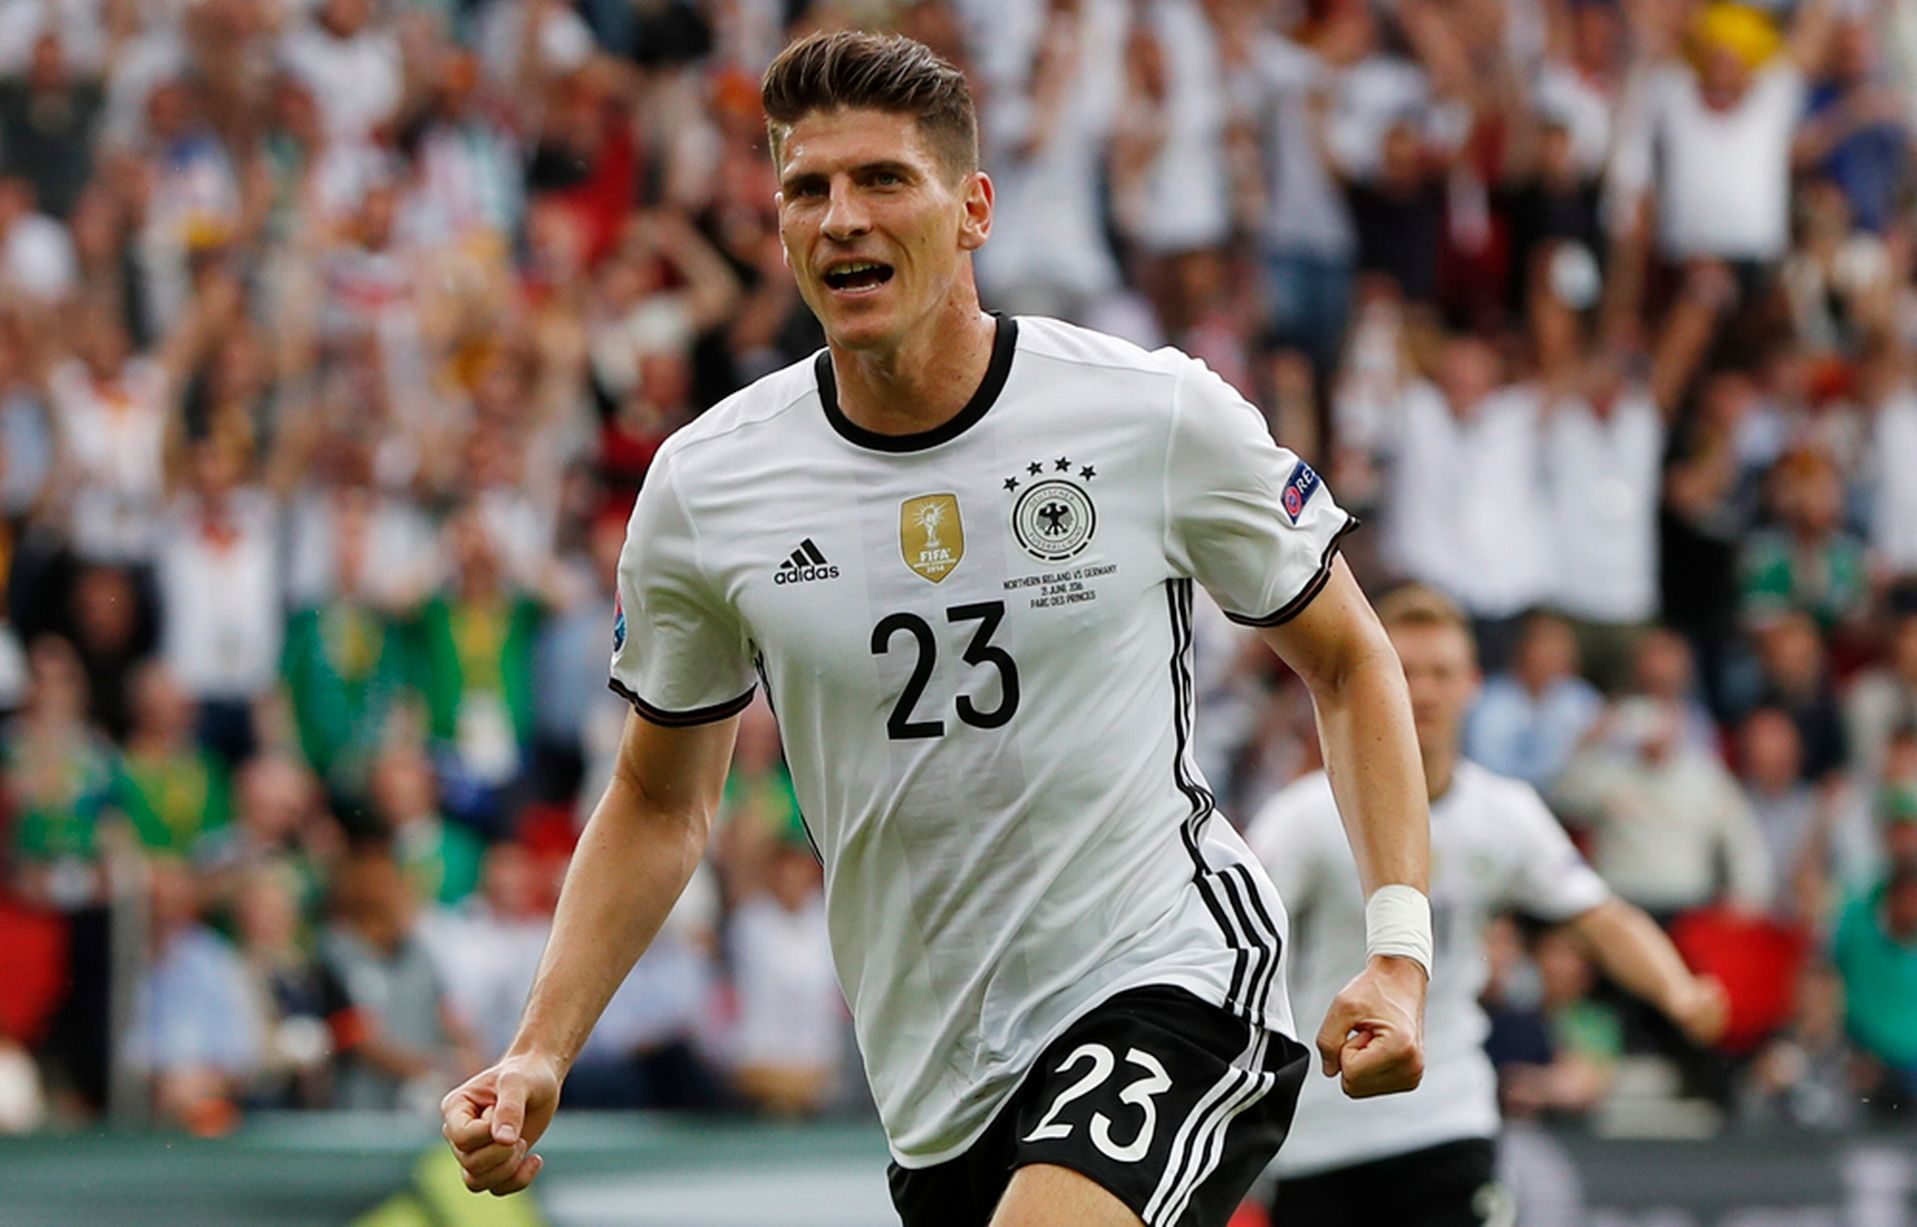 Germany v ireland betting previews basic horse betting explained definition